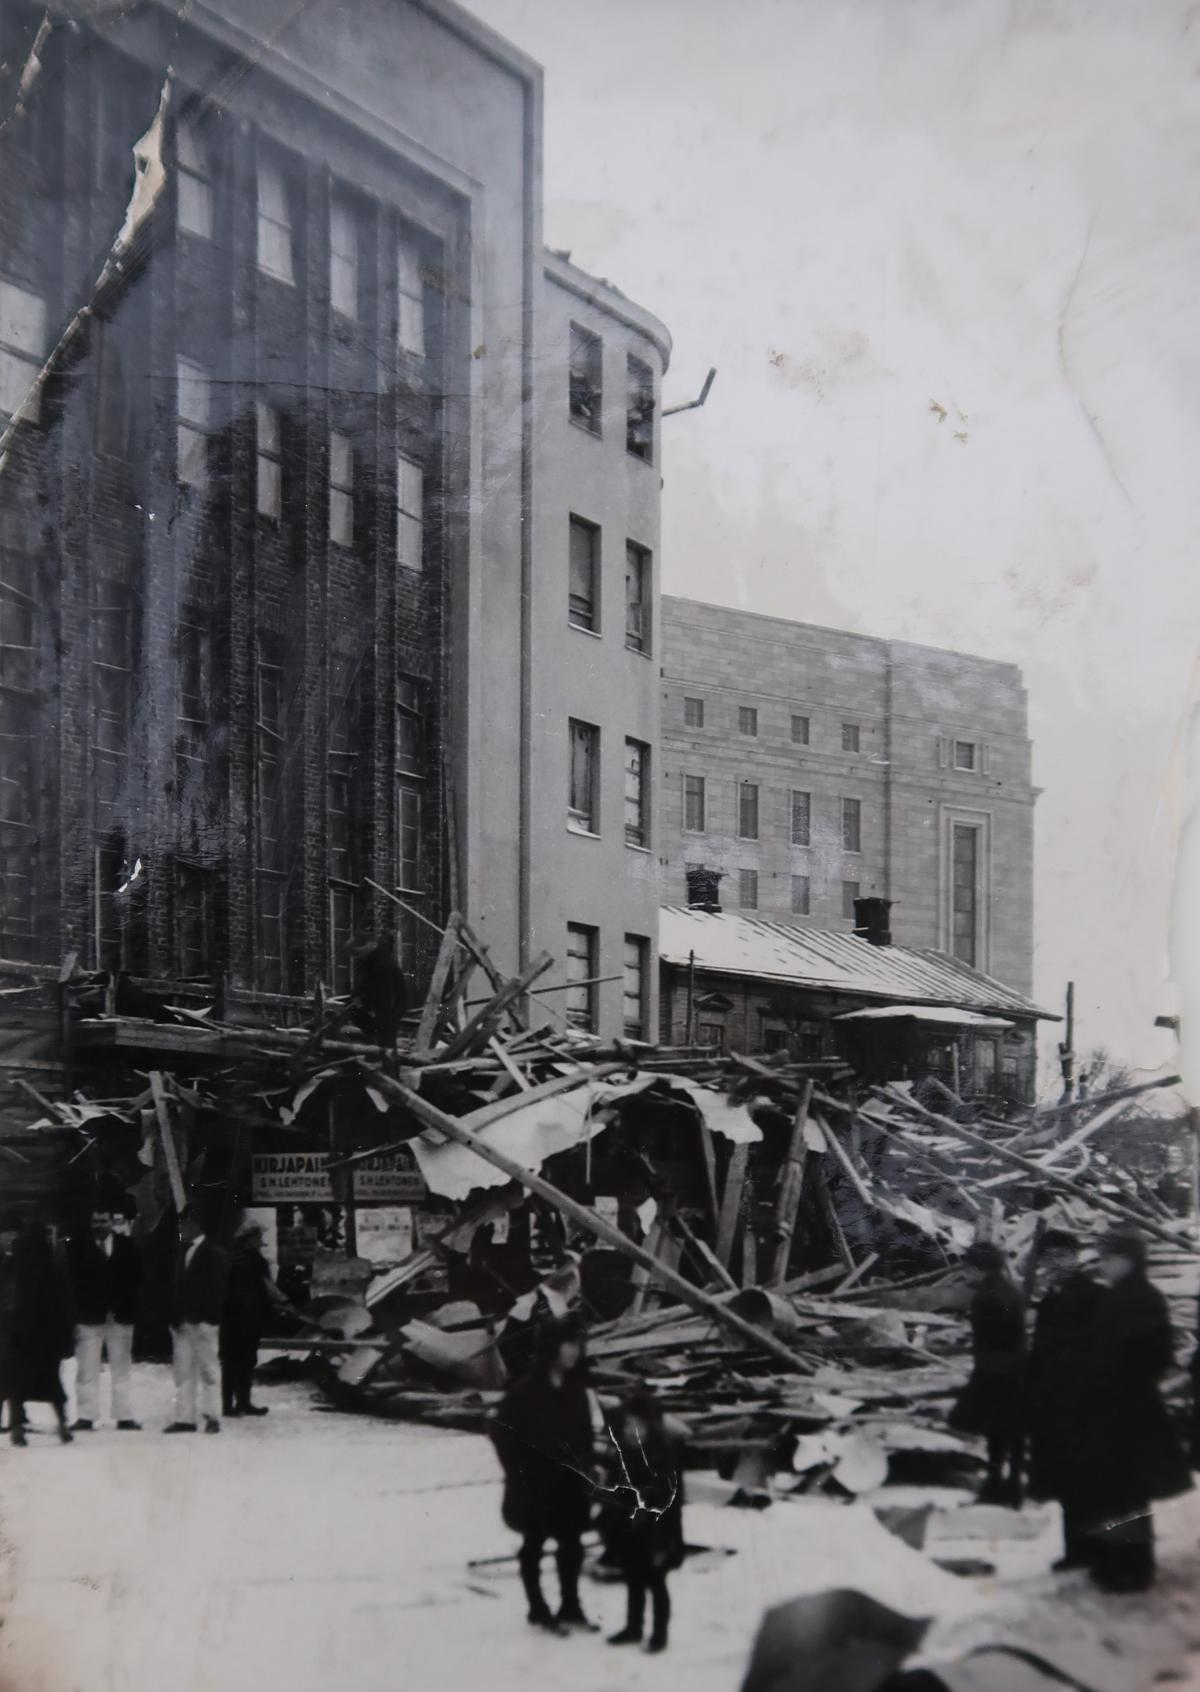 Close-up view of the collapsed scaffolding.